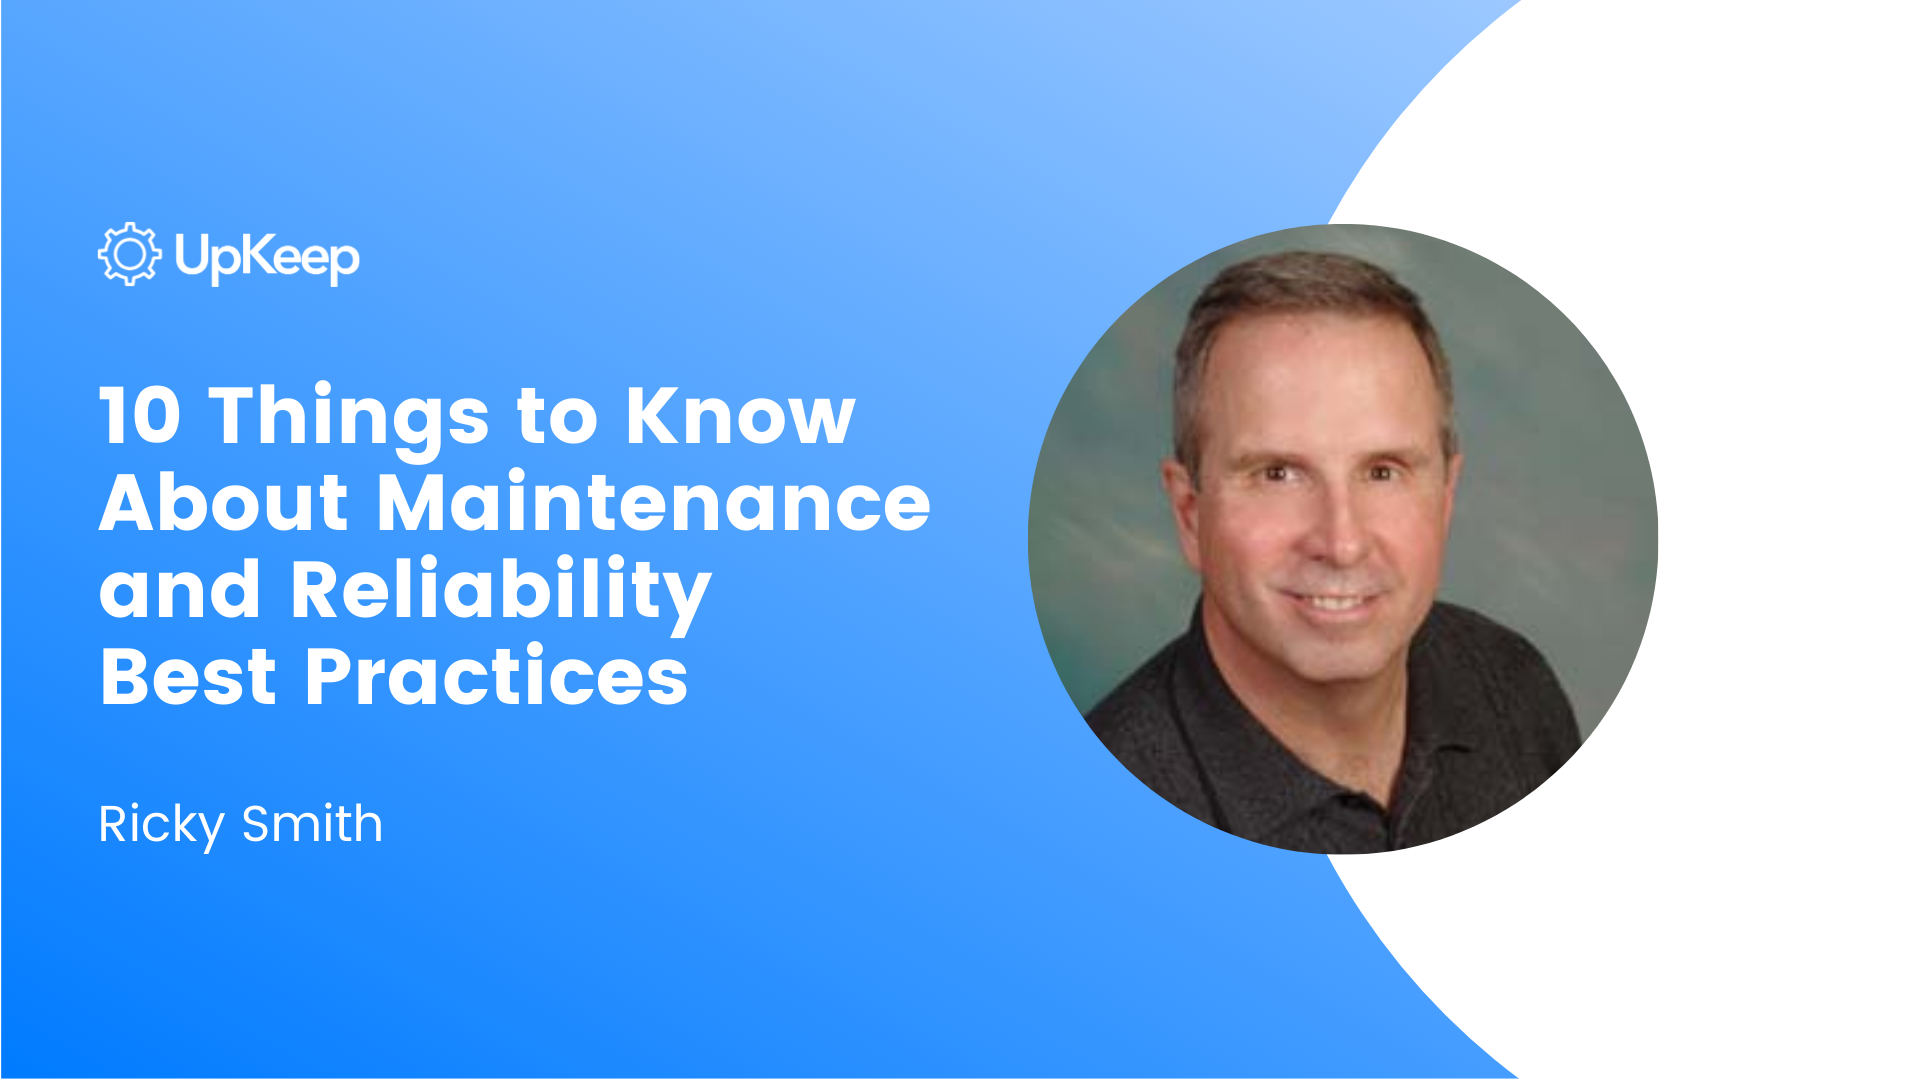 10 Things to Know About Maintenance and Reliability Best Practices